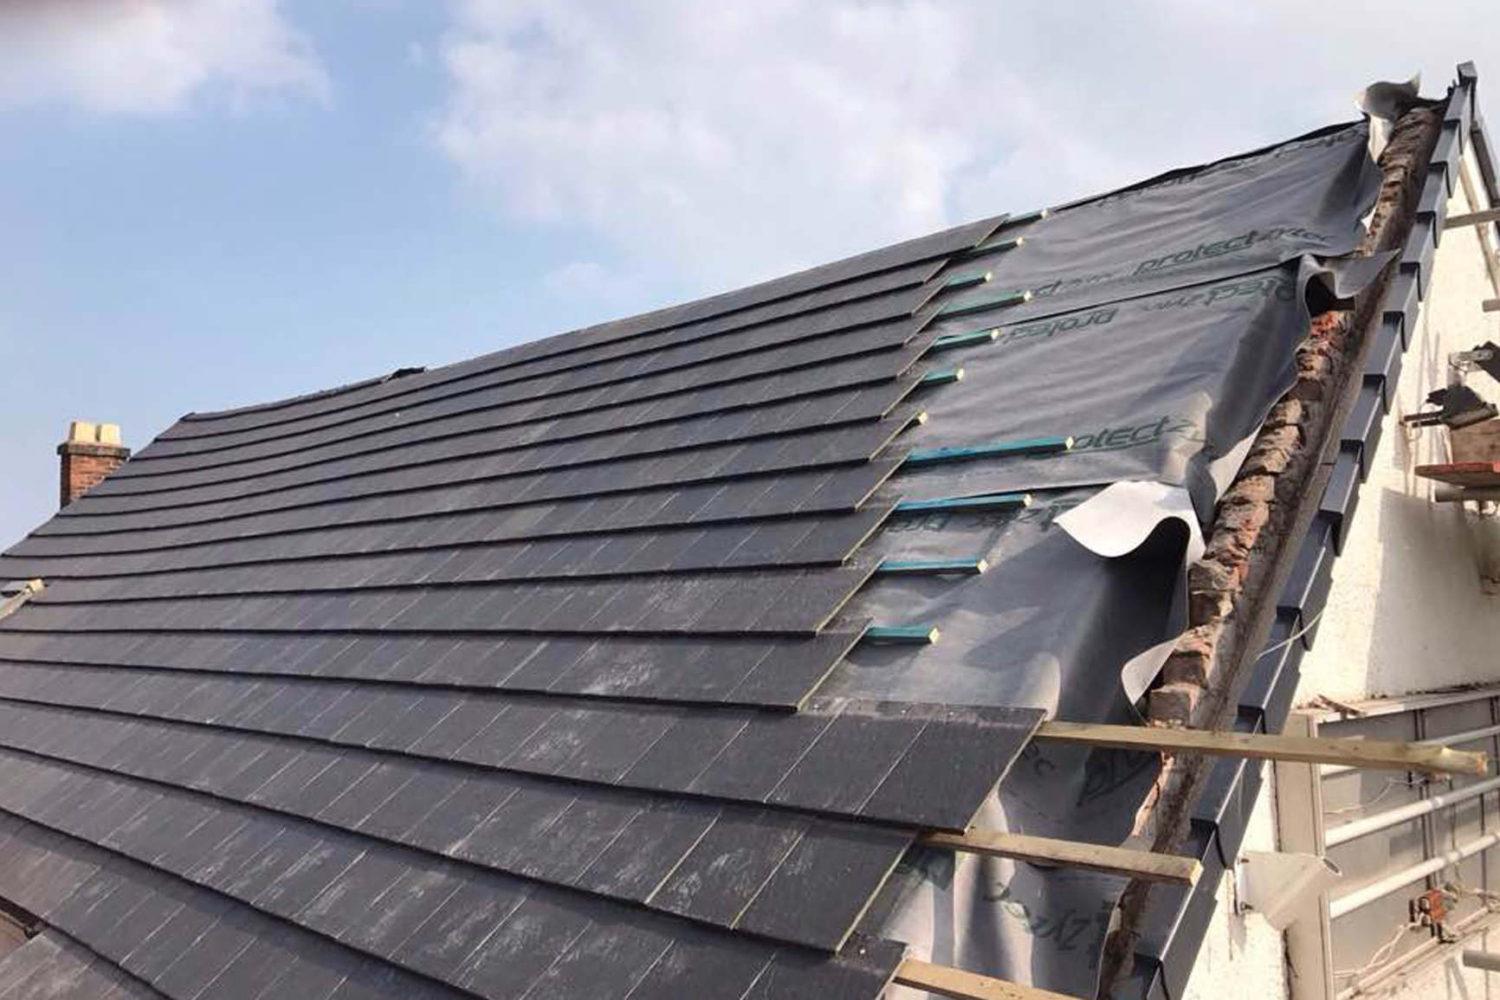 Cwl Roofers In Preston Domestic And Commercial Roofing Contractors